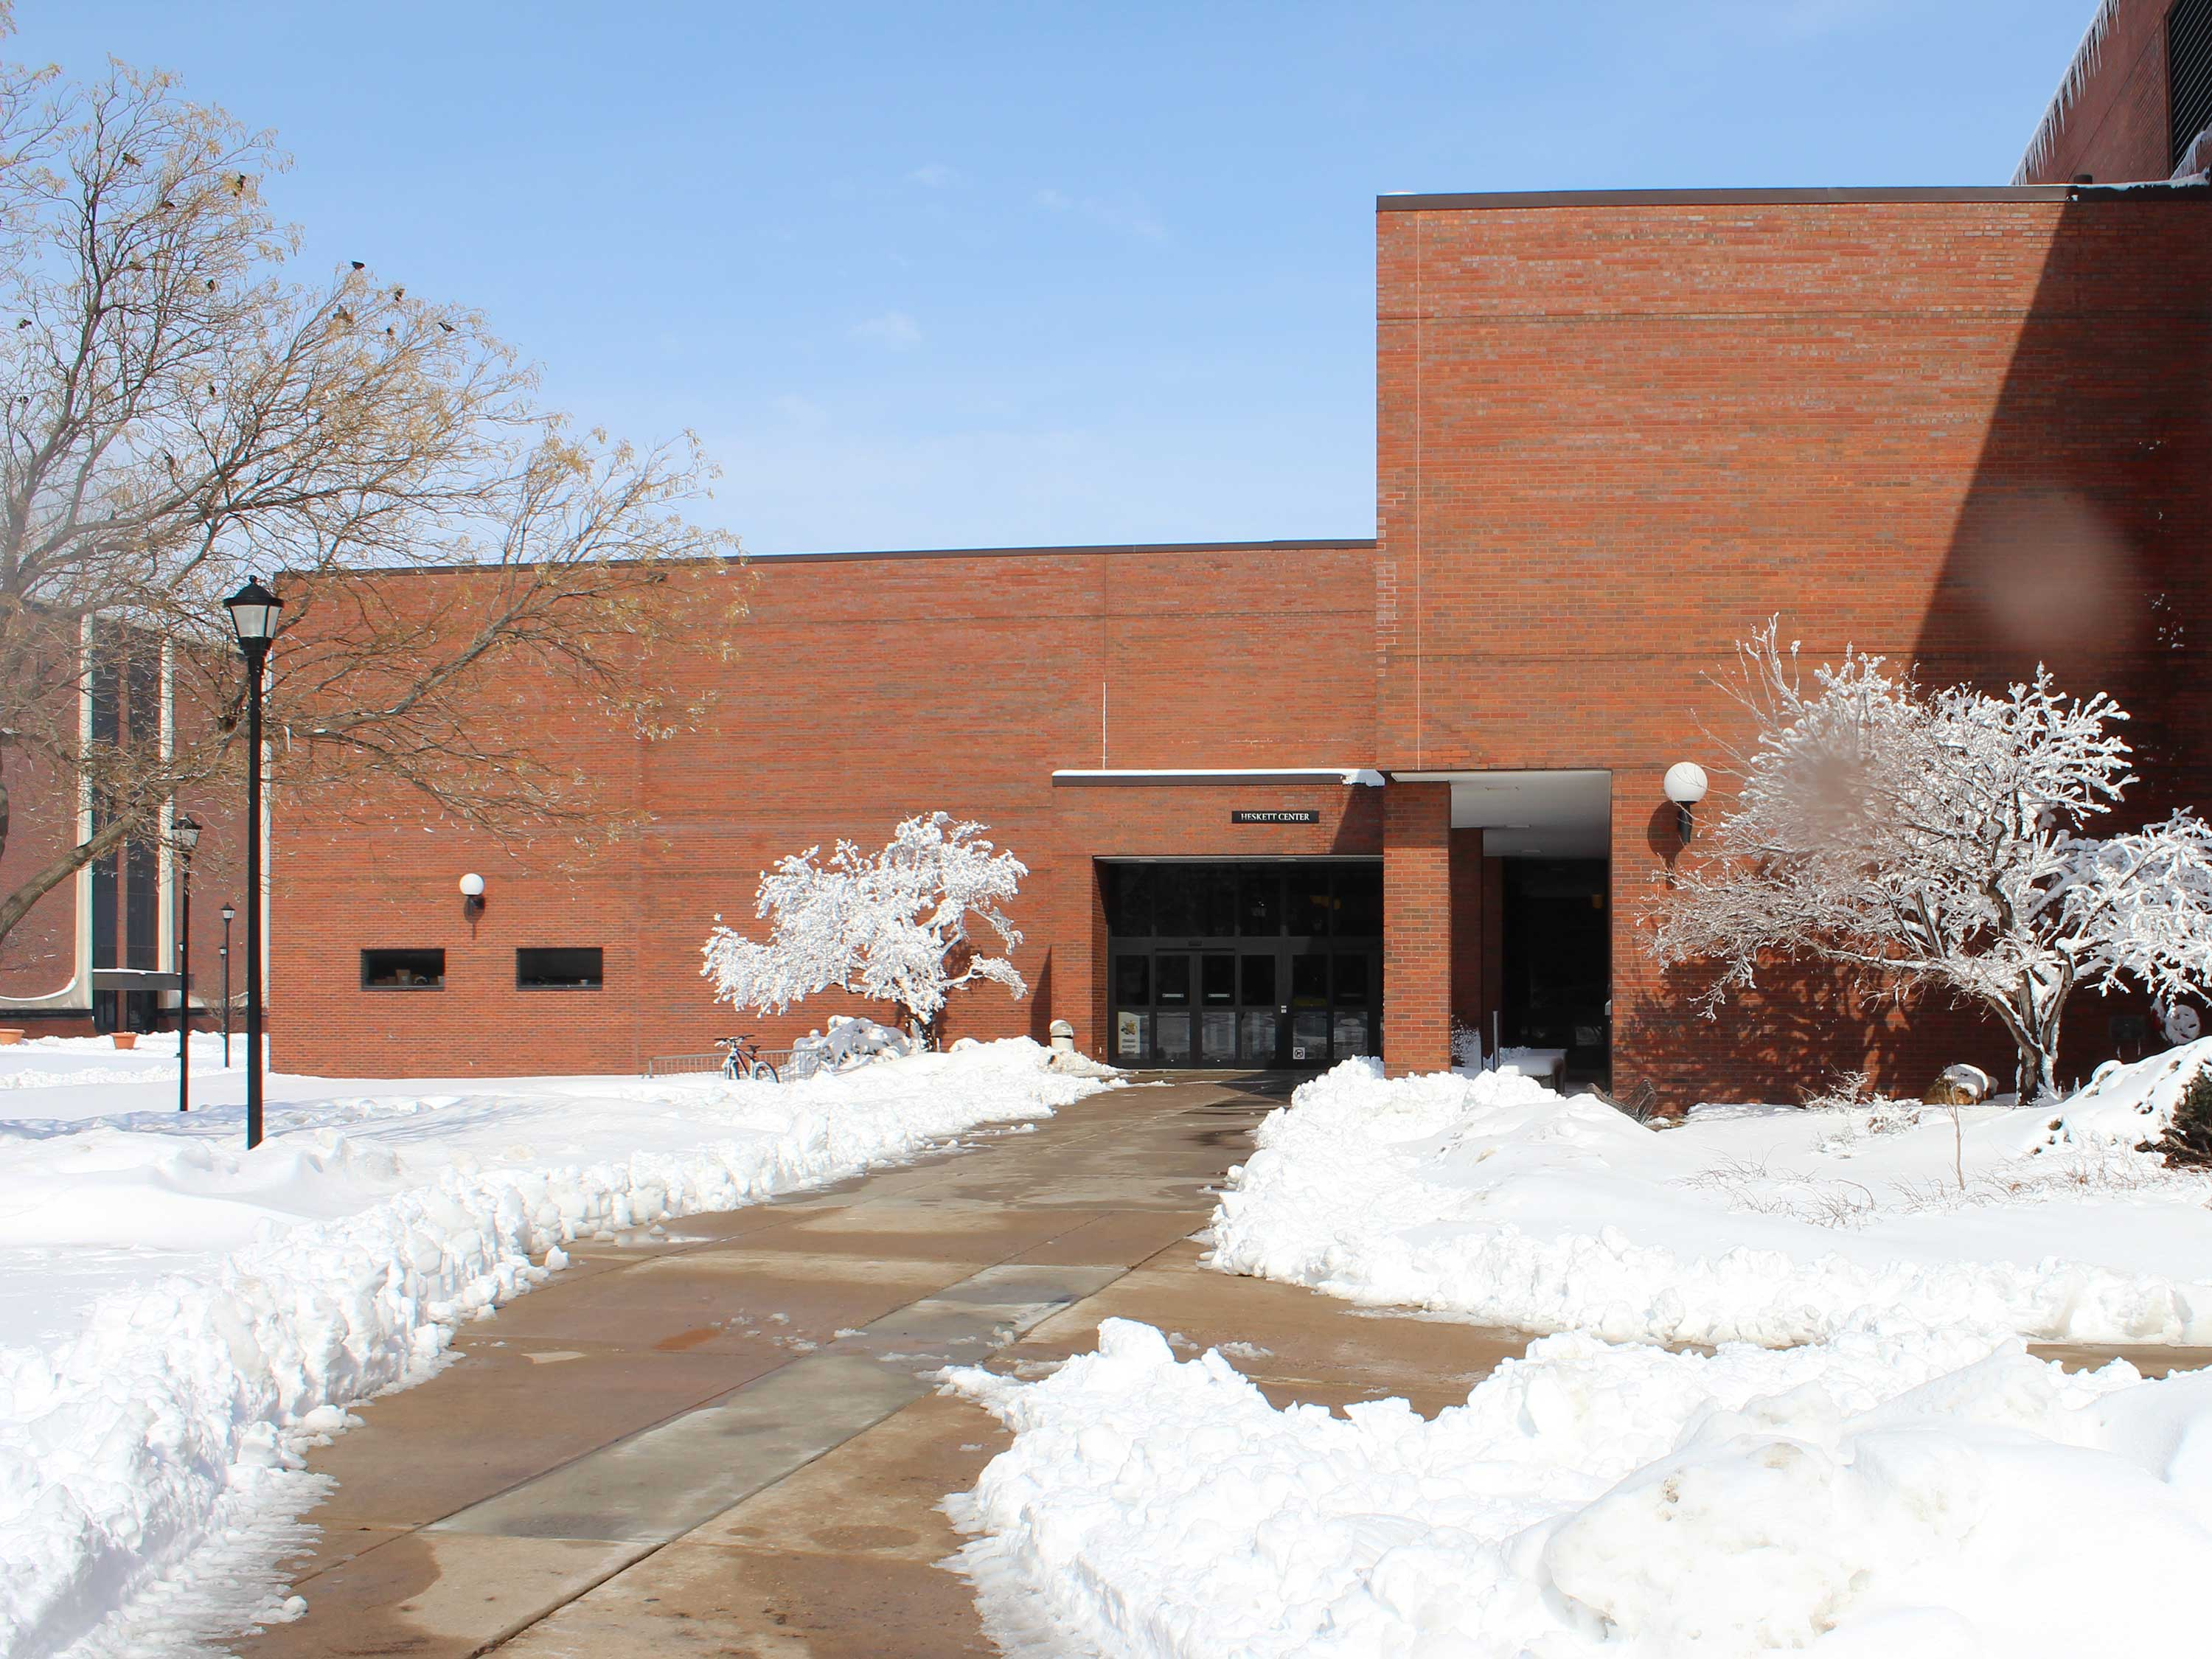 Heskett exterior during winter snow.